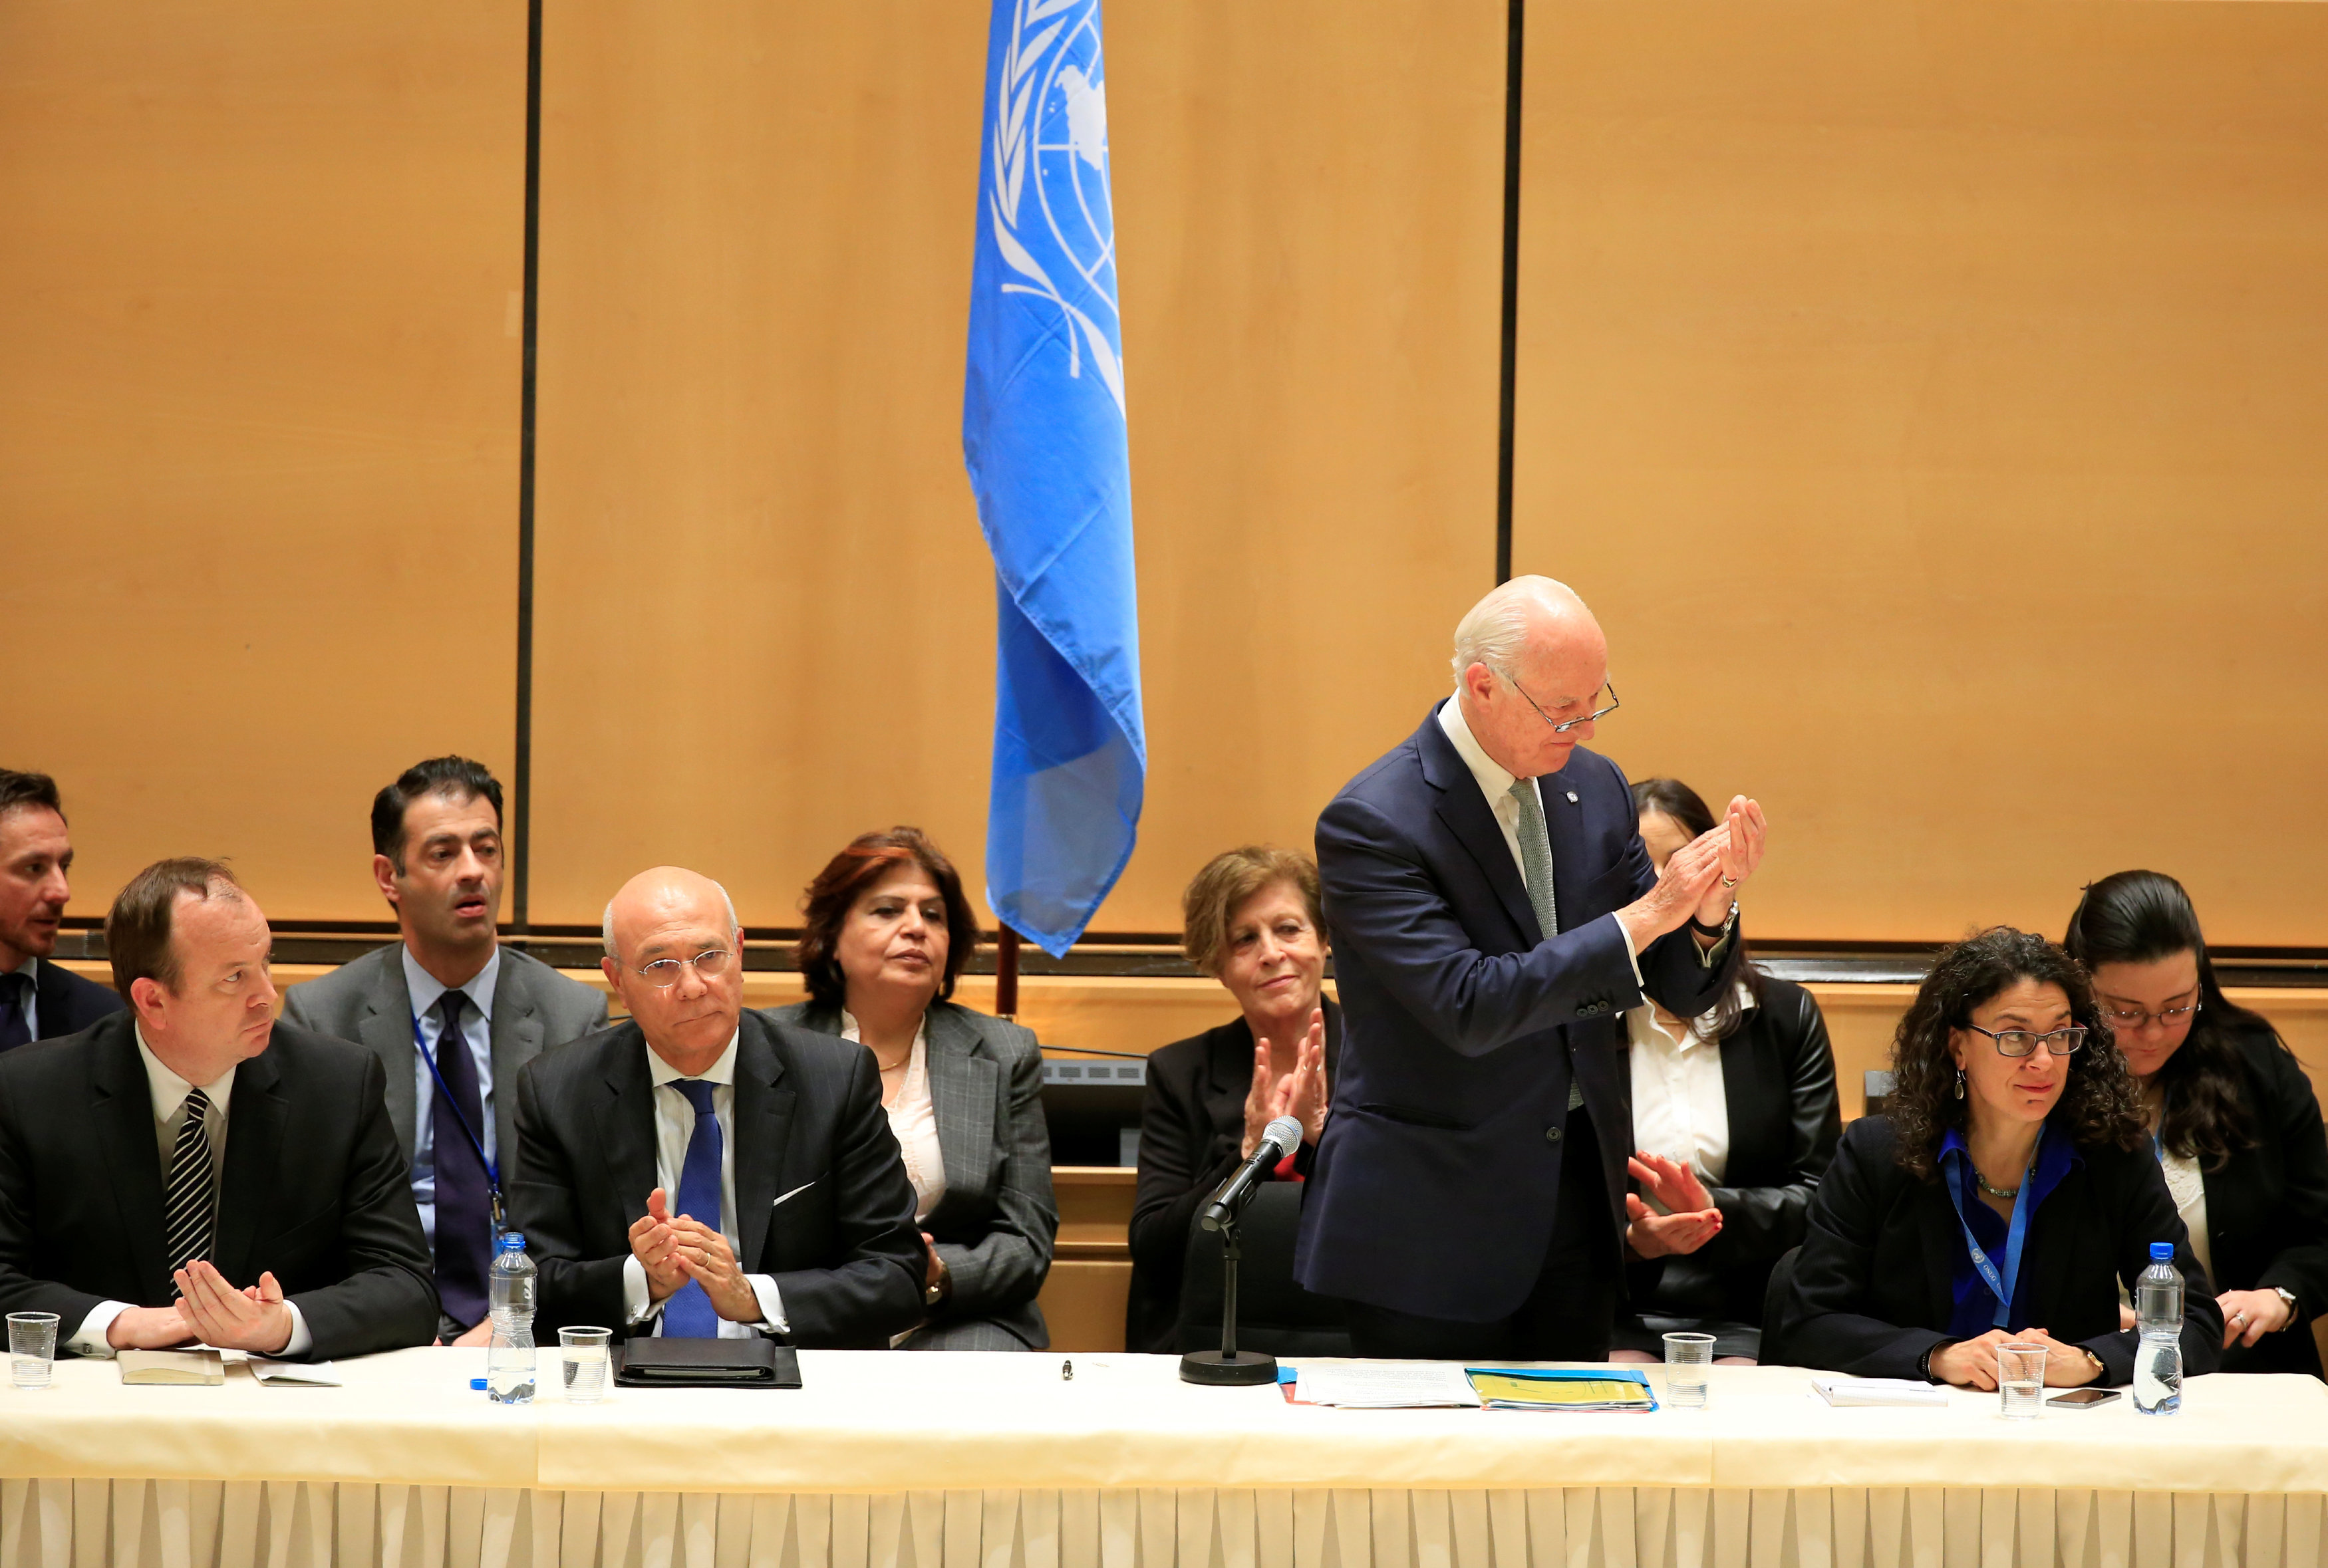 United Nations Special Envoy for Syria Staffan de Mistura addresses the Syrian invitees in the presence of members of the UN Security Council and the International Syria Support Group in the context of the resumption of intra-Syrian talks at the Palais des Nations in Geneva, Switzerland, February 23, 2017